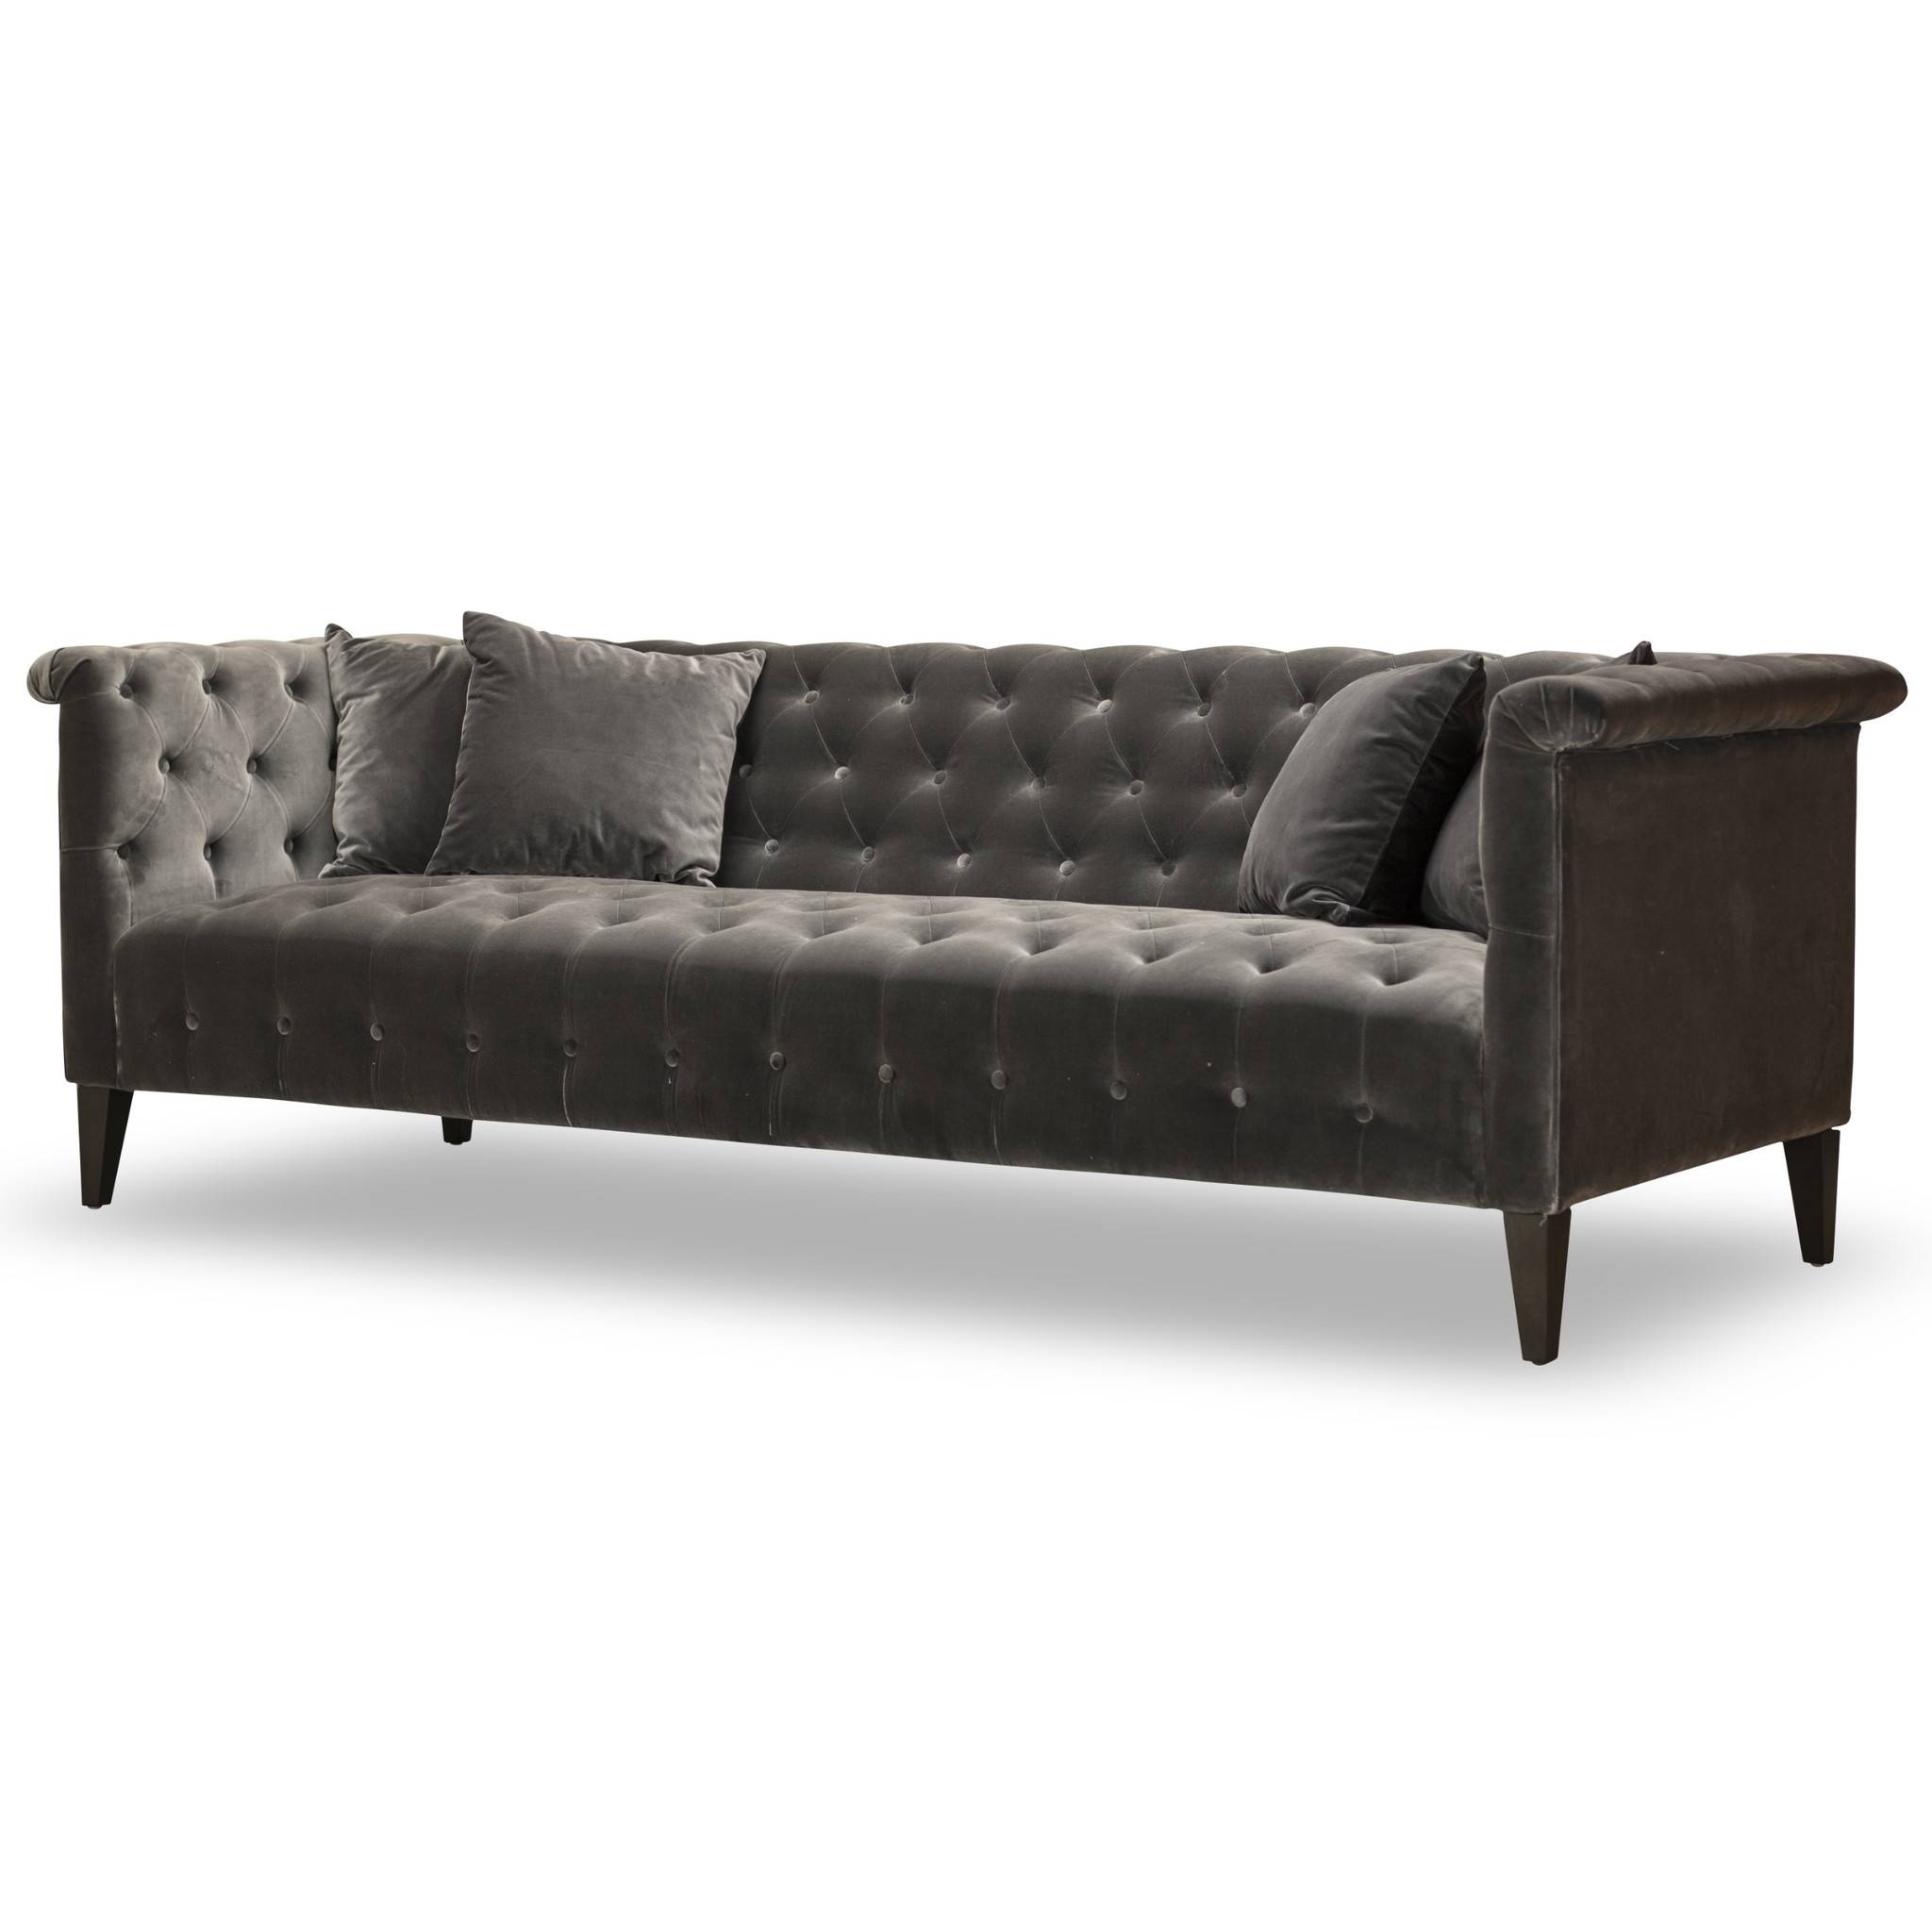 Furniture: Black Velvet Sofas Velvet Tufted Sofa throughout Black Velvet Sofas (Image 11 of 30)